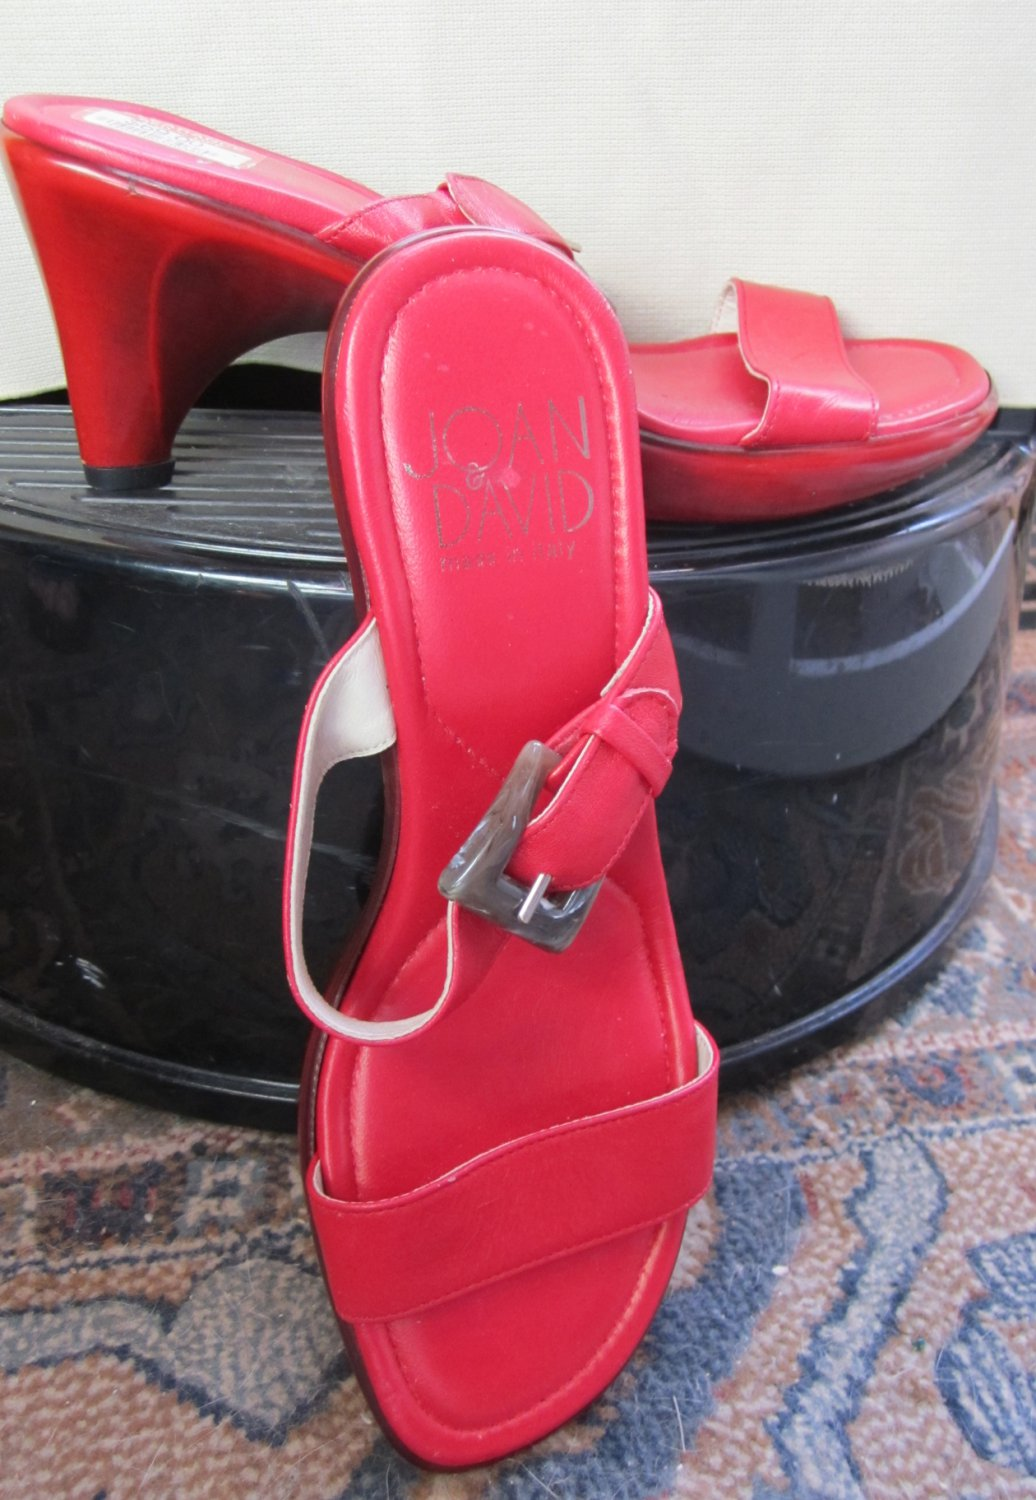 NIB Joan & David $289 Red Leather Slide Sandals with Red Soles 6 267814